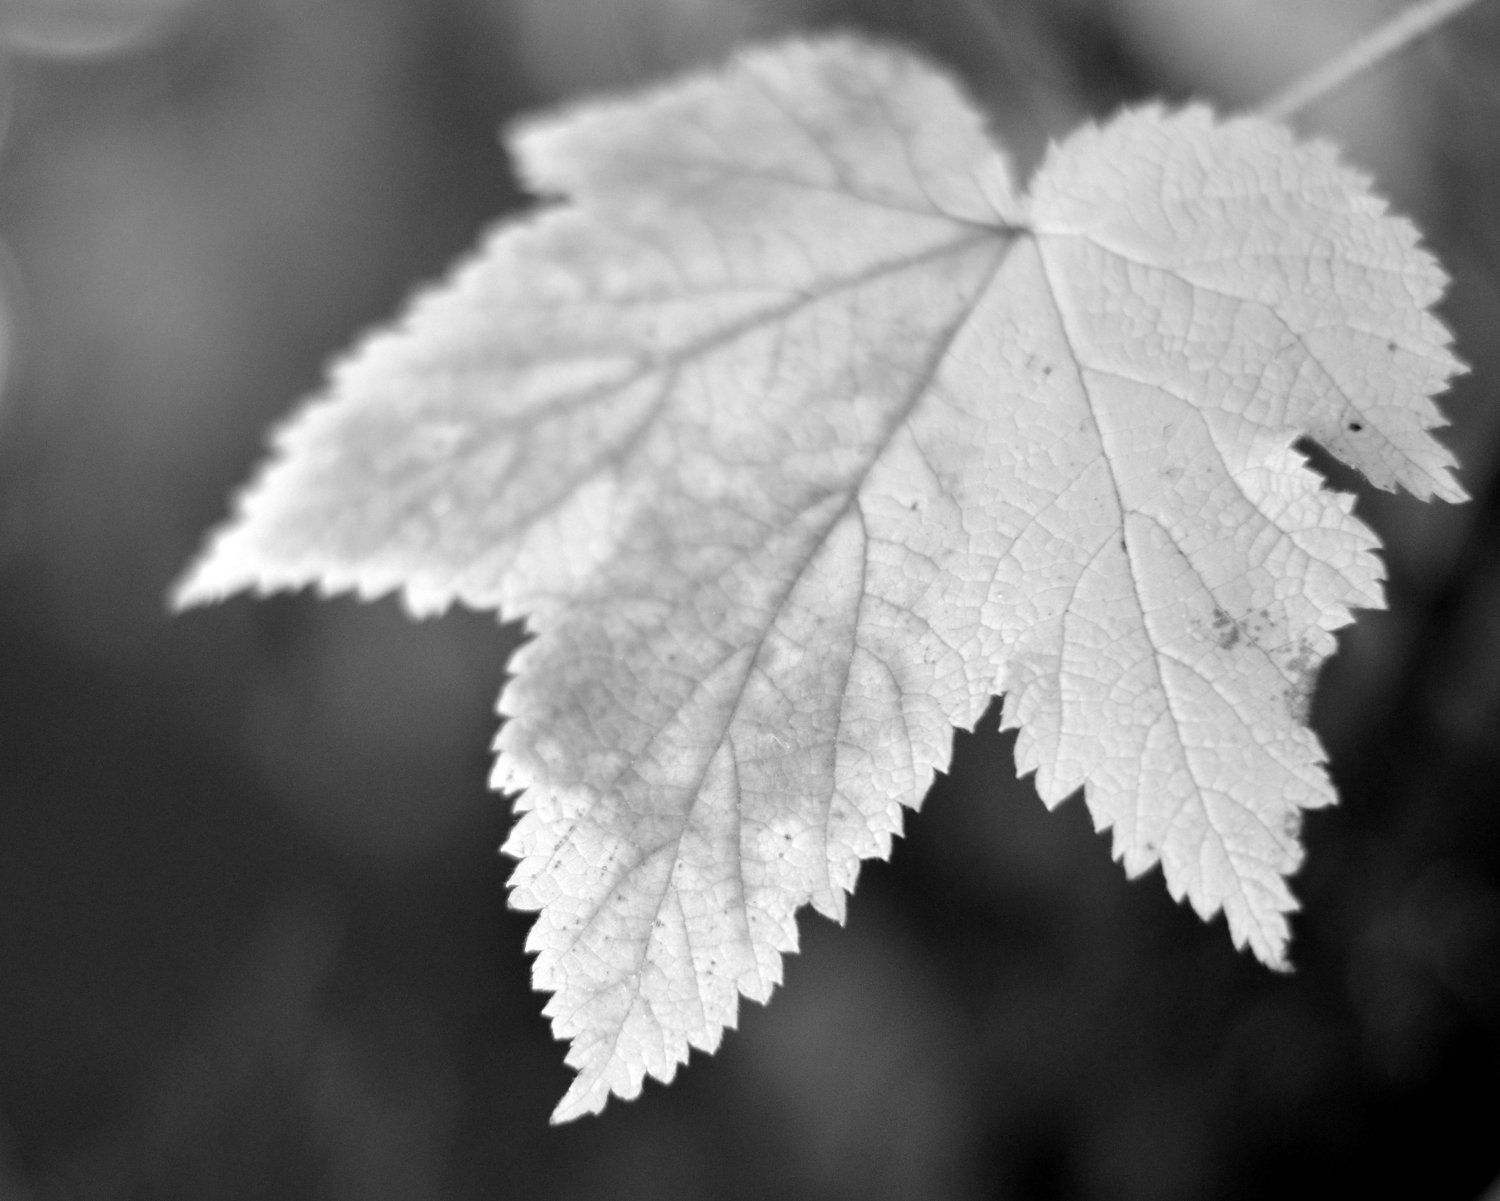 Leaf Photography Black and White 11x14 by PureNaturePhotos on Etsy